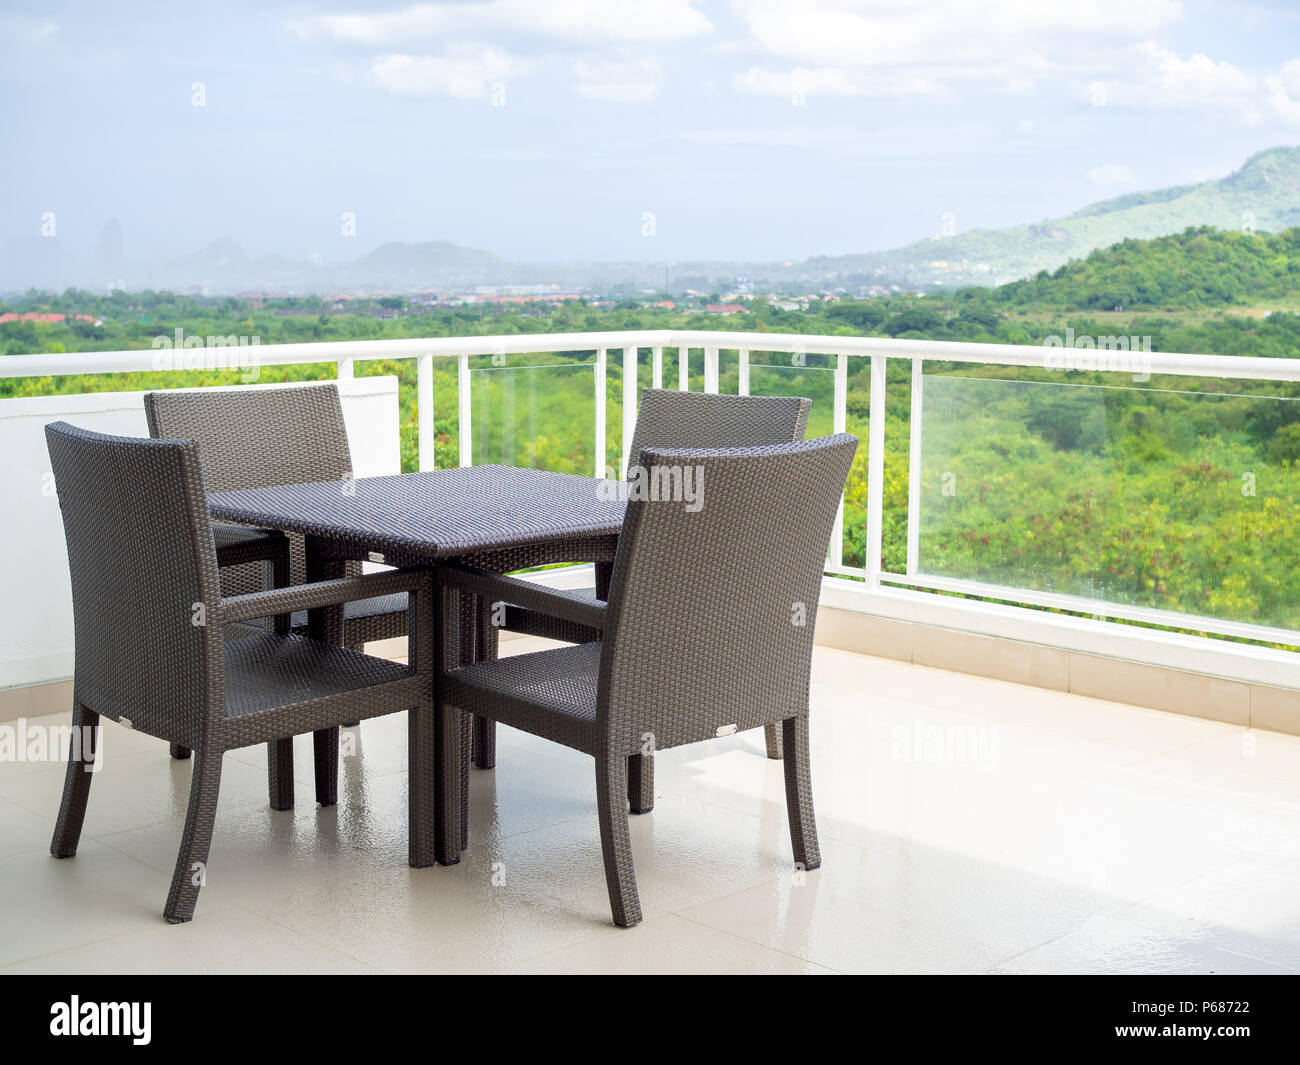 Modern Weave Wicker Dining Table Set In The Terrace With Mountain